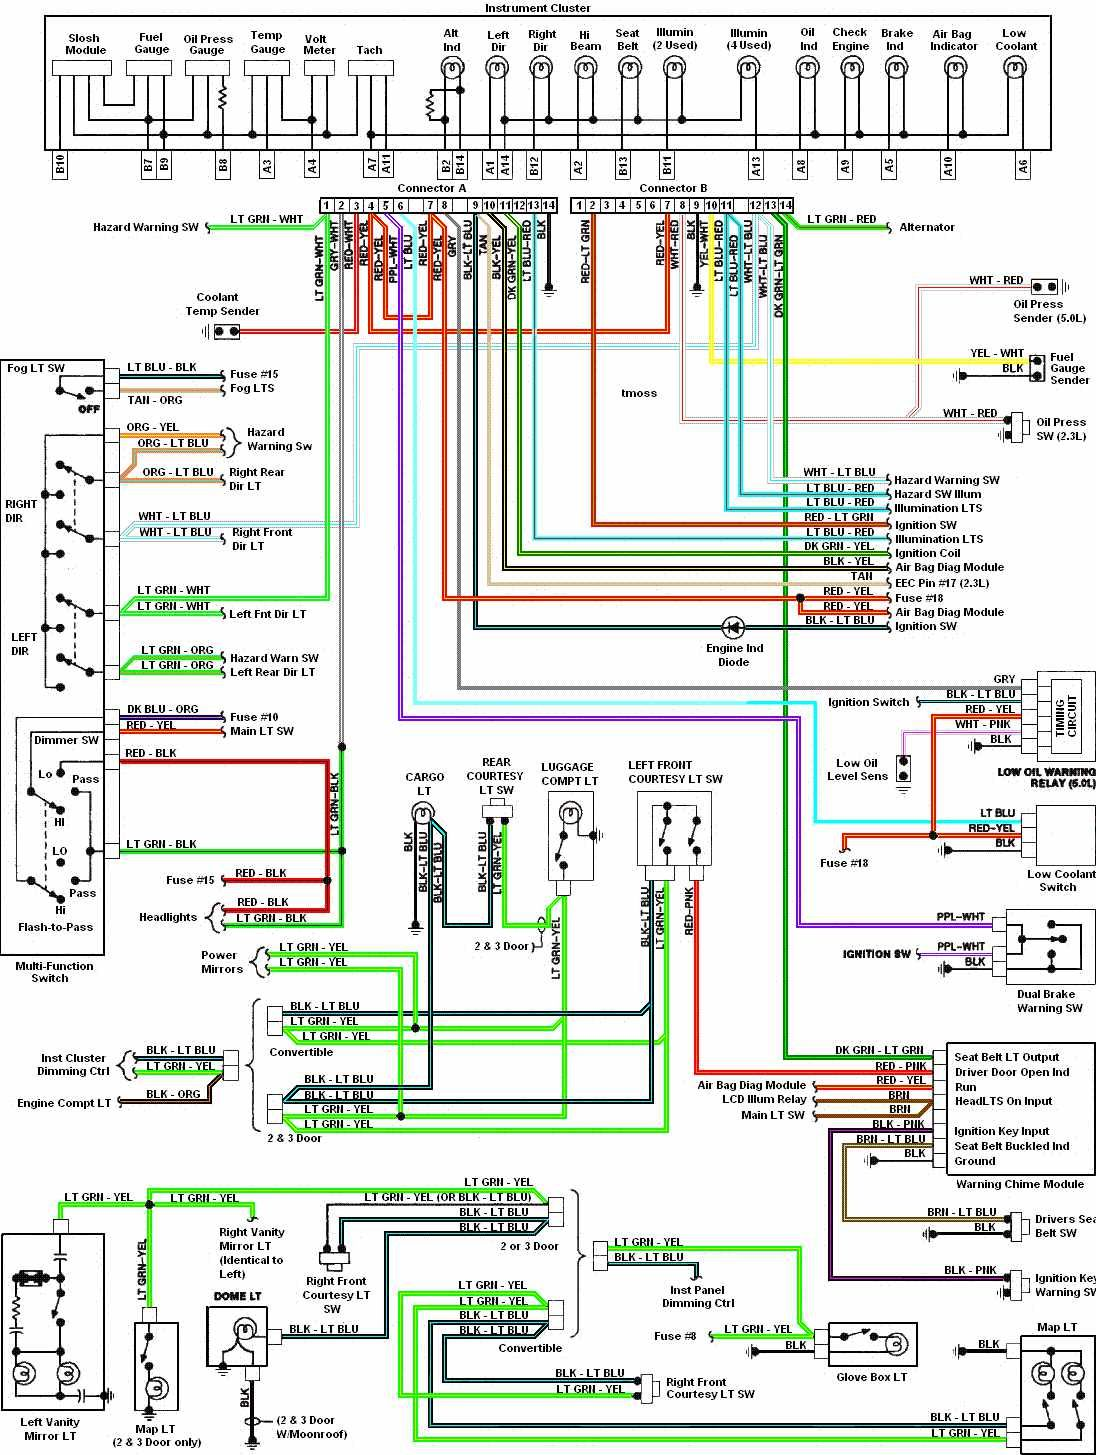 Marvelous 1969 Mustang Dash Wiring Diagram Wiring Diagram Wiring Digital Resources Lavecompassionincorg